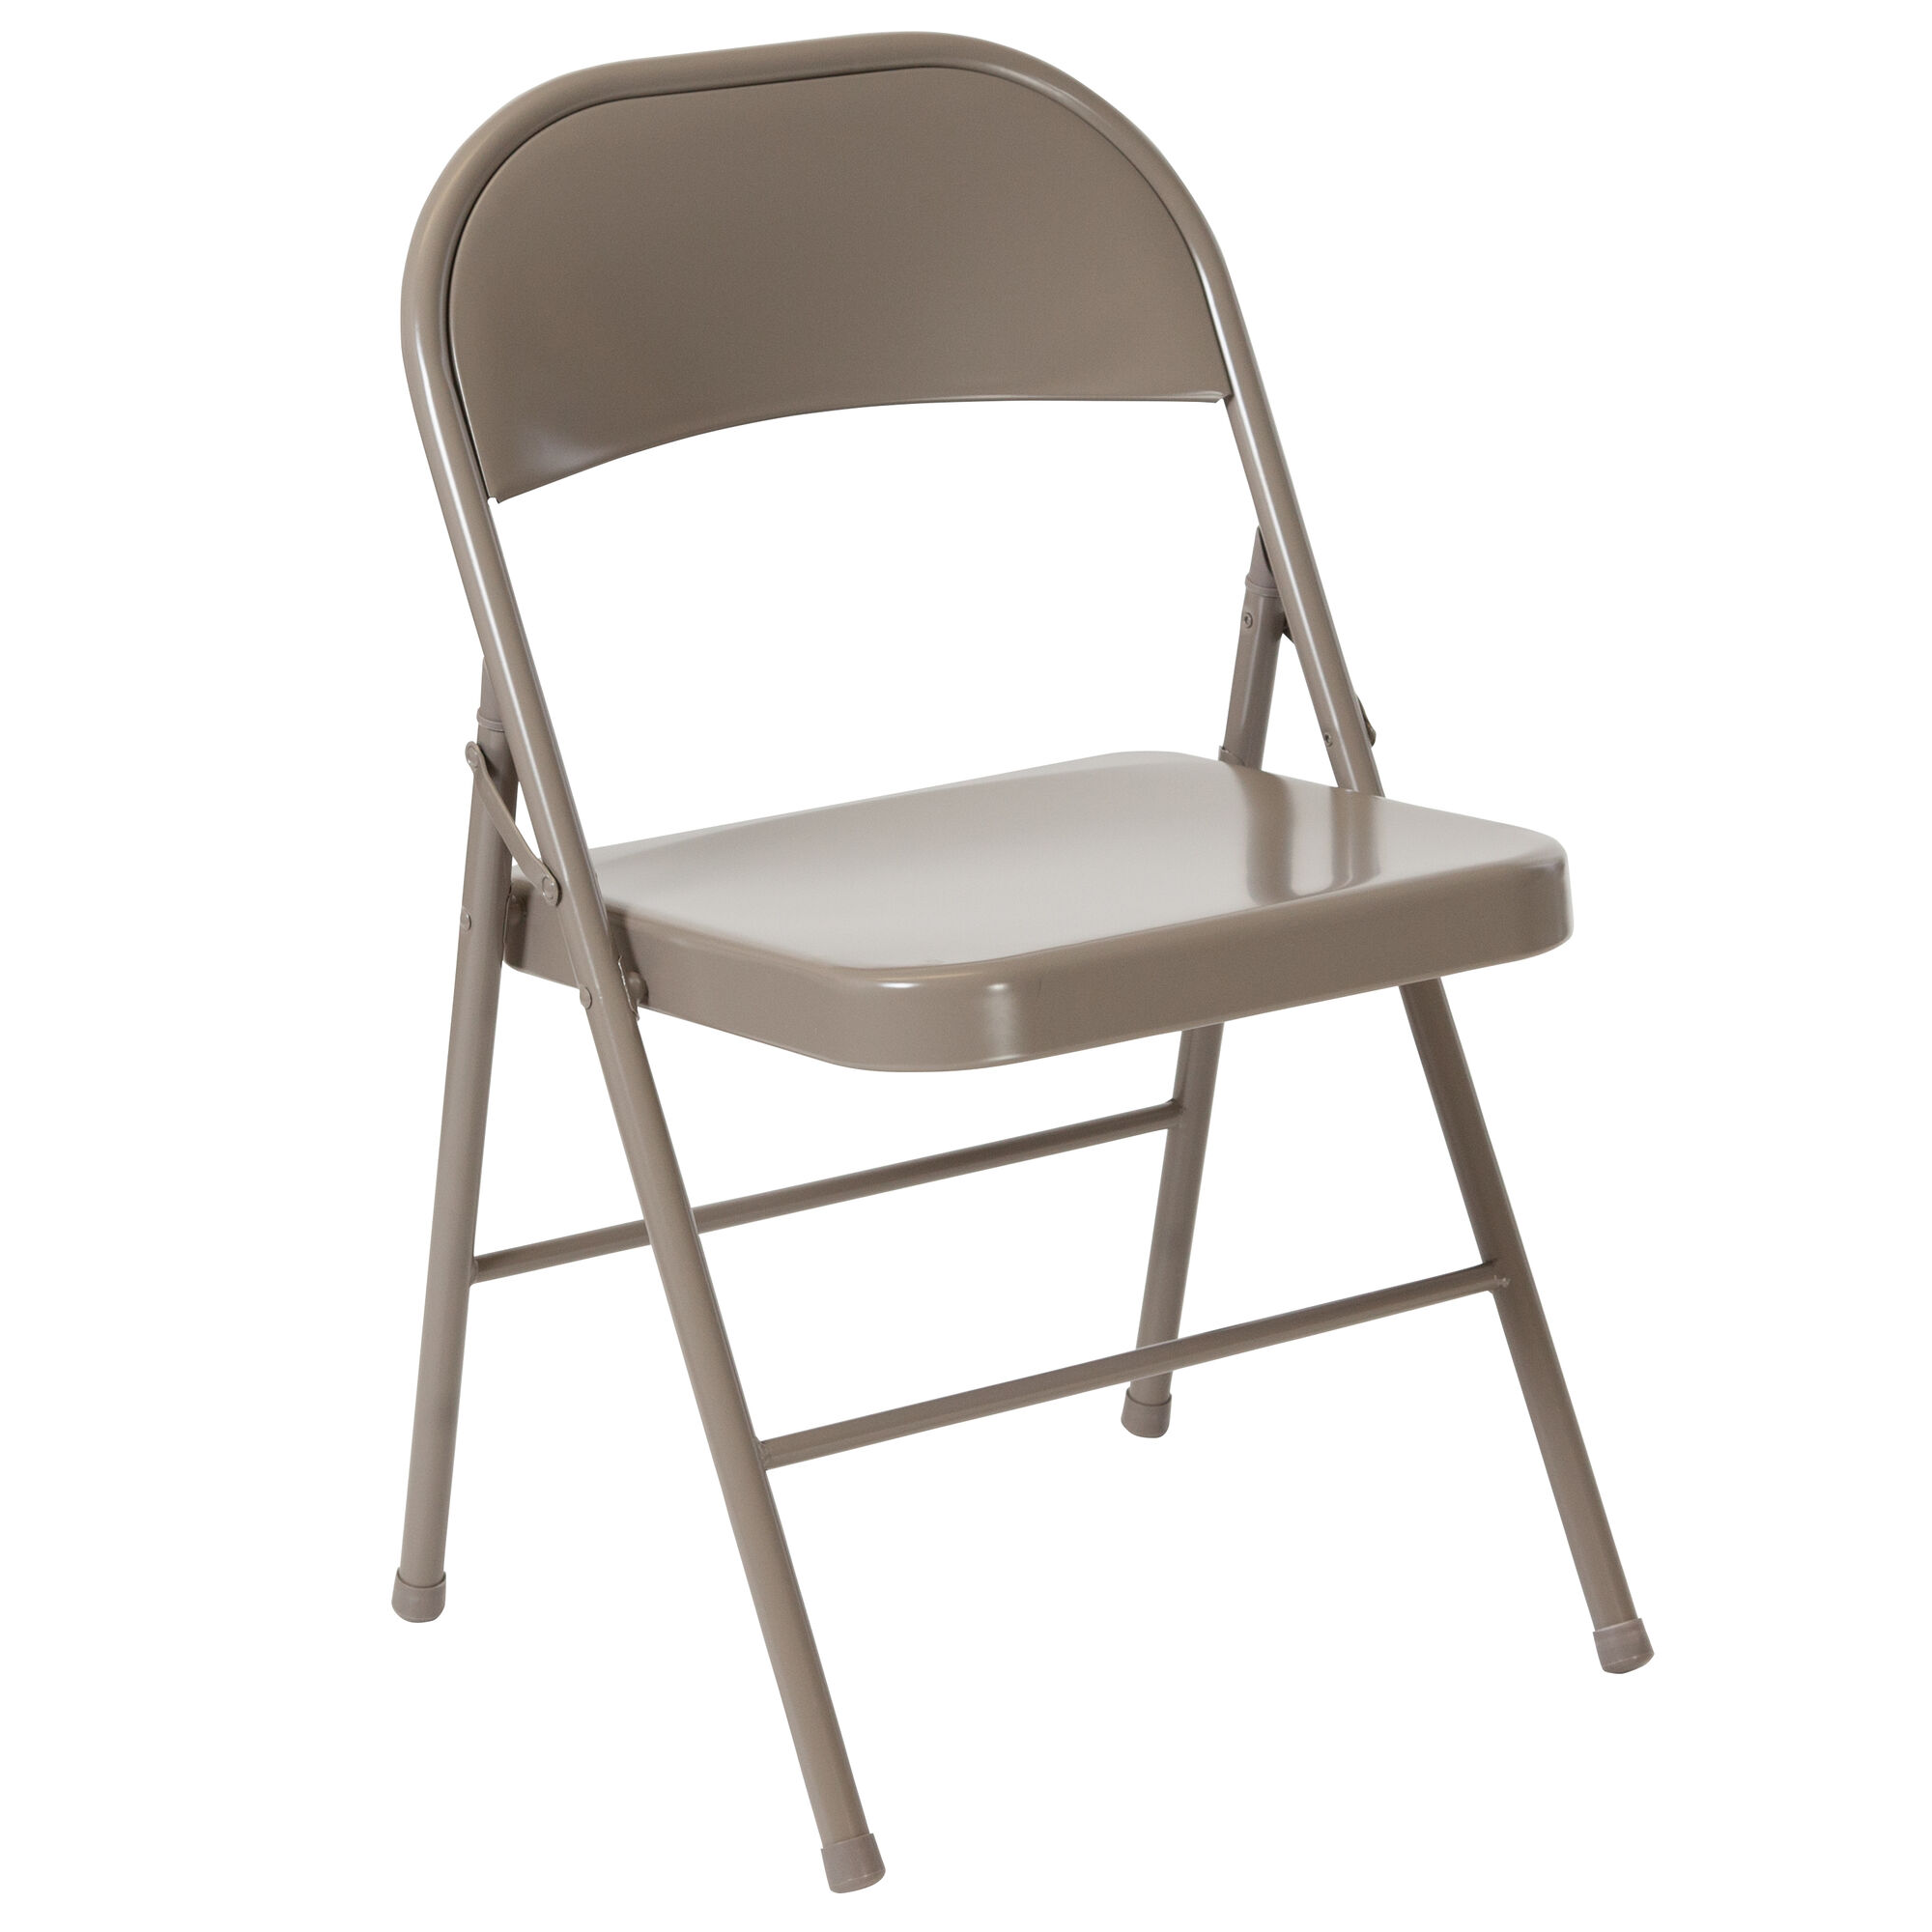 Cool Hercules Series Double Braced Gray Metal Folding Chair Theyellowbook Wood Chair Design Ideas Theyellowbookinfo